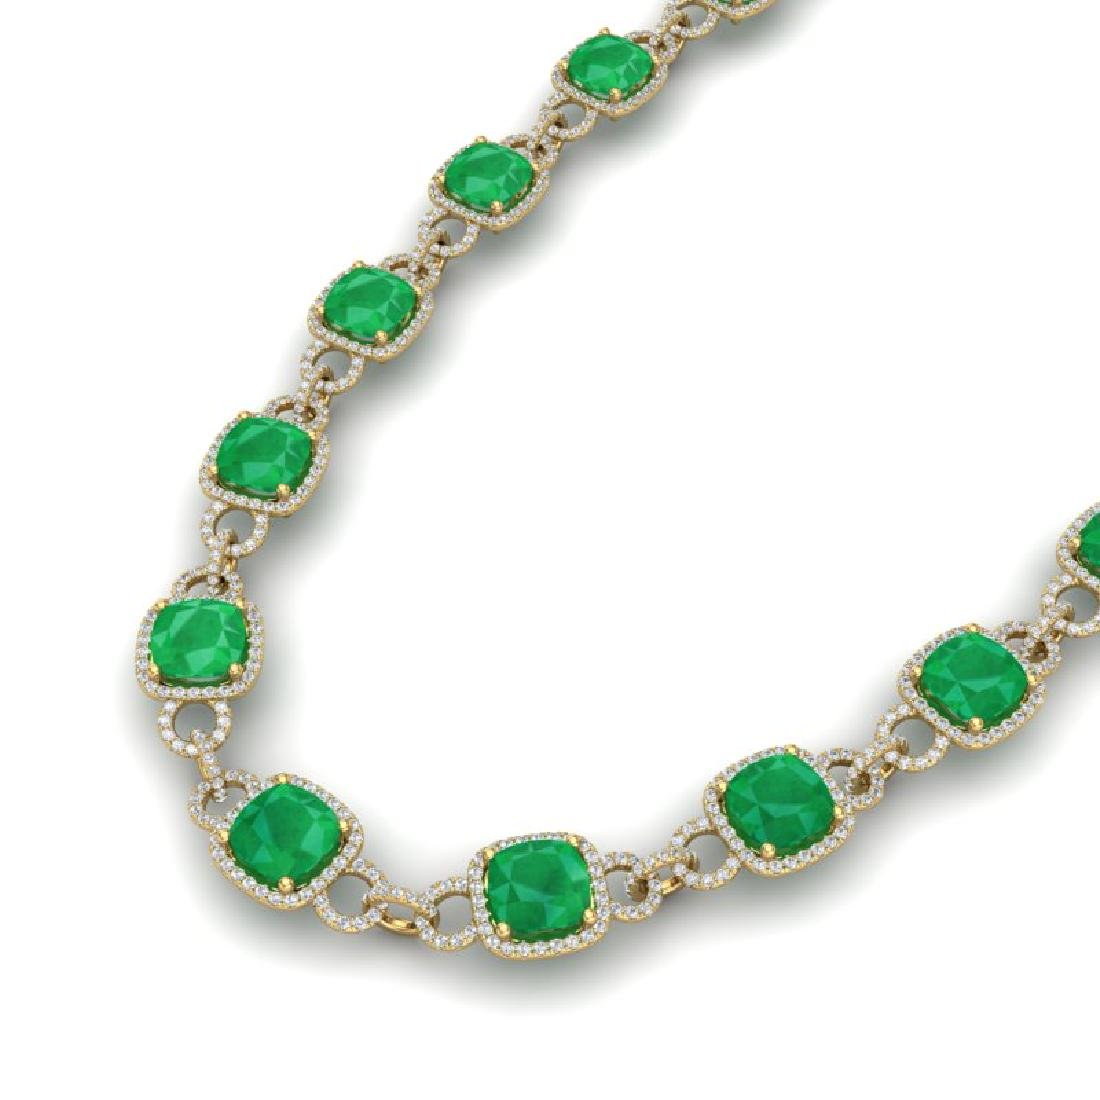 56 CTW Emerald & VS/SI Diamond Necklace 14K Yellow Gold